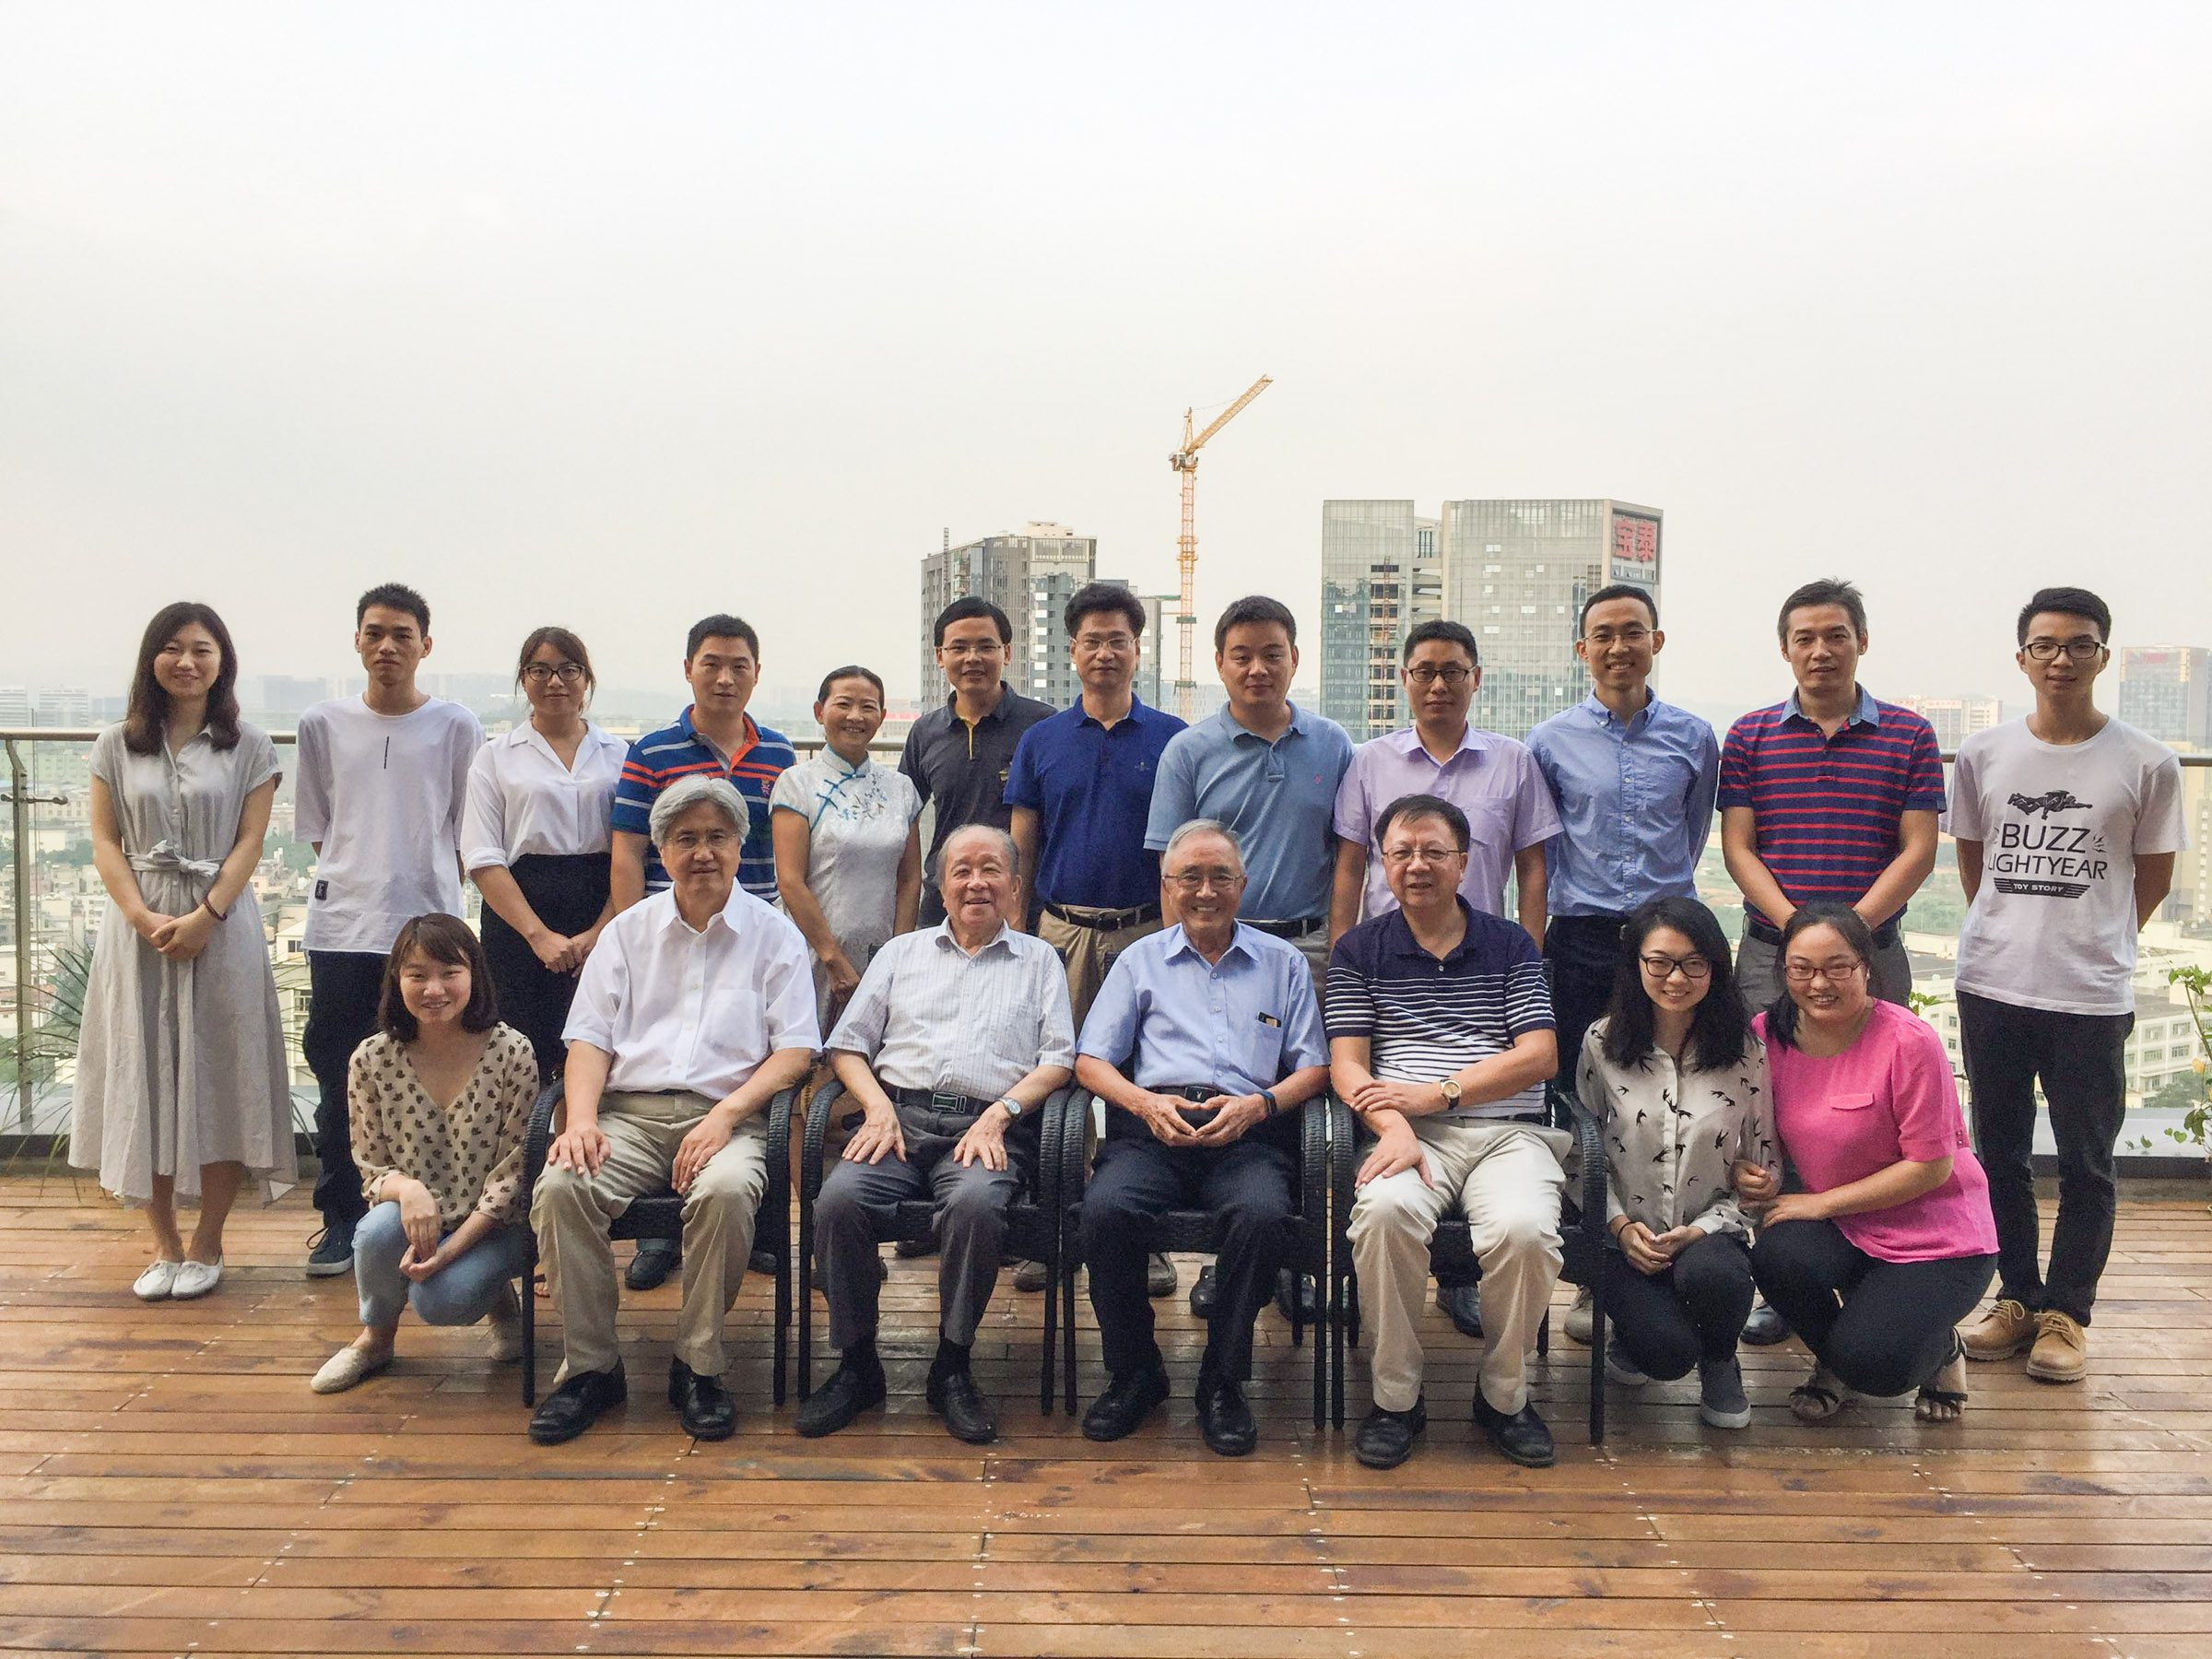 The HKUST Research Team, led by Prof. WEN Weijia